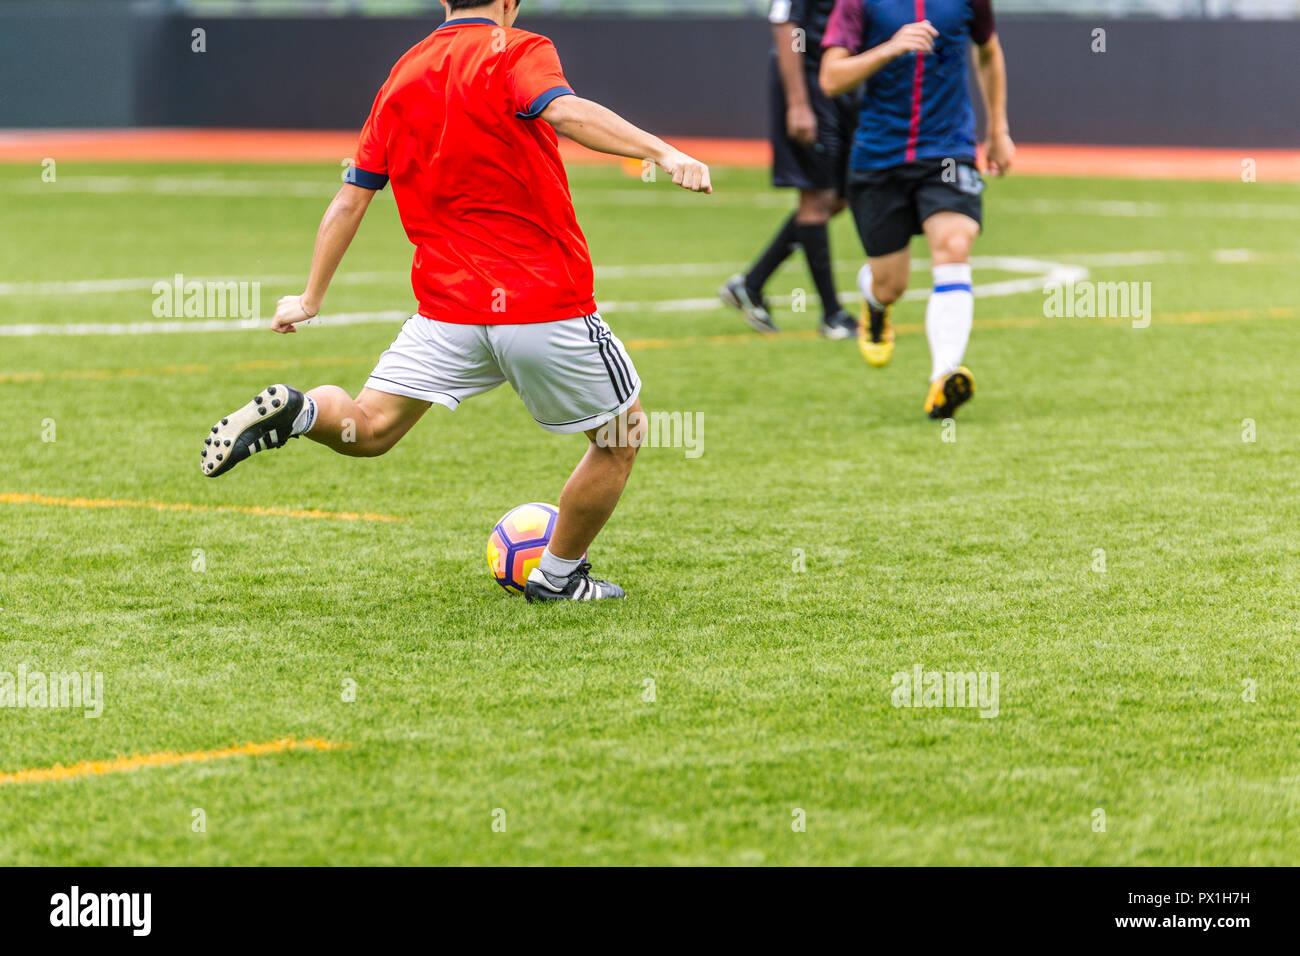 Playing Soccer Football Players in the Stadium Field during Match Competition showing Soccer Ball for Background - Stock Image